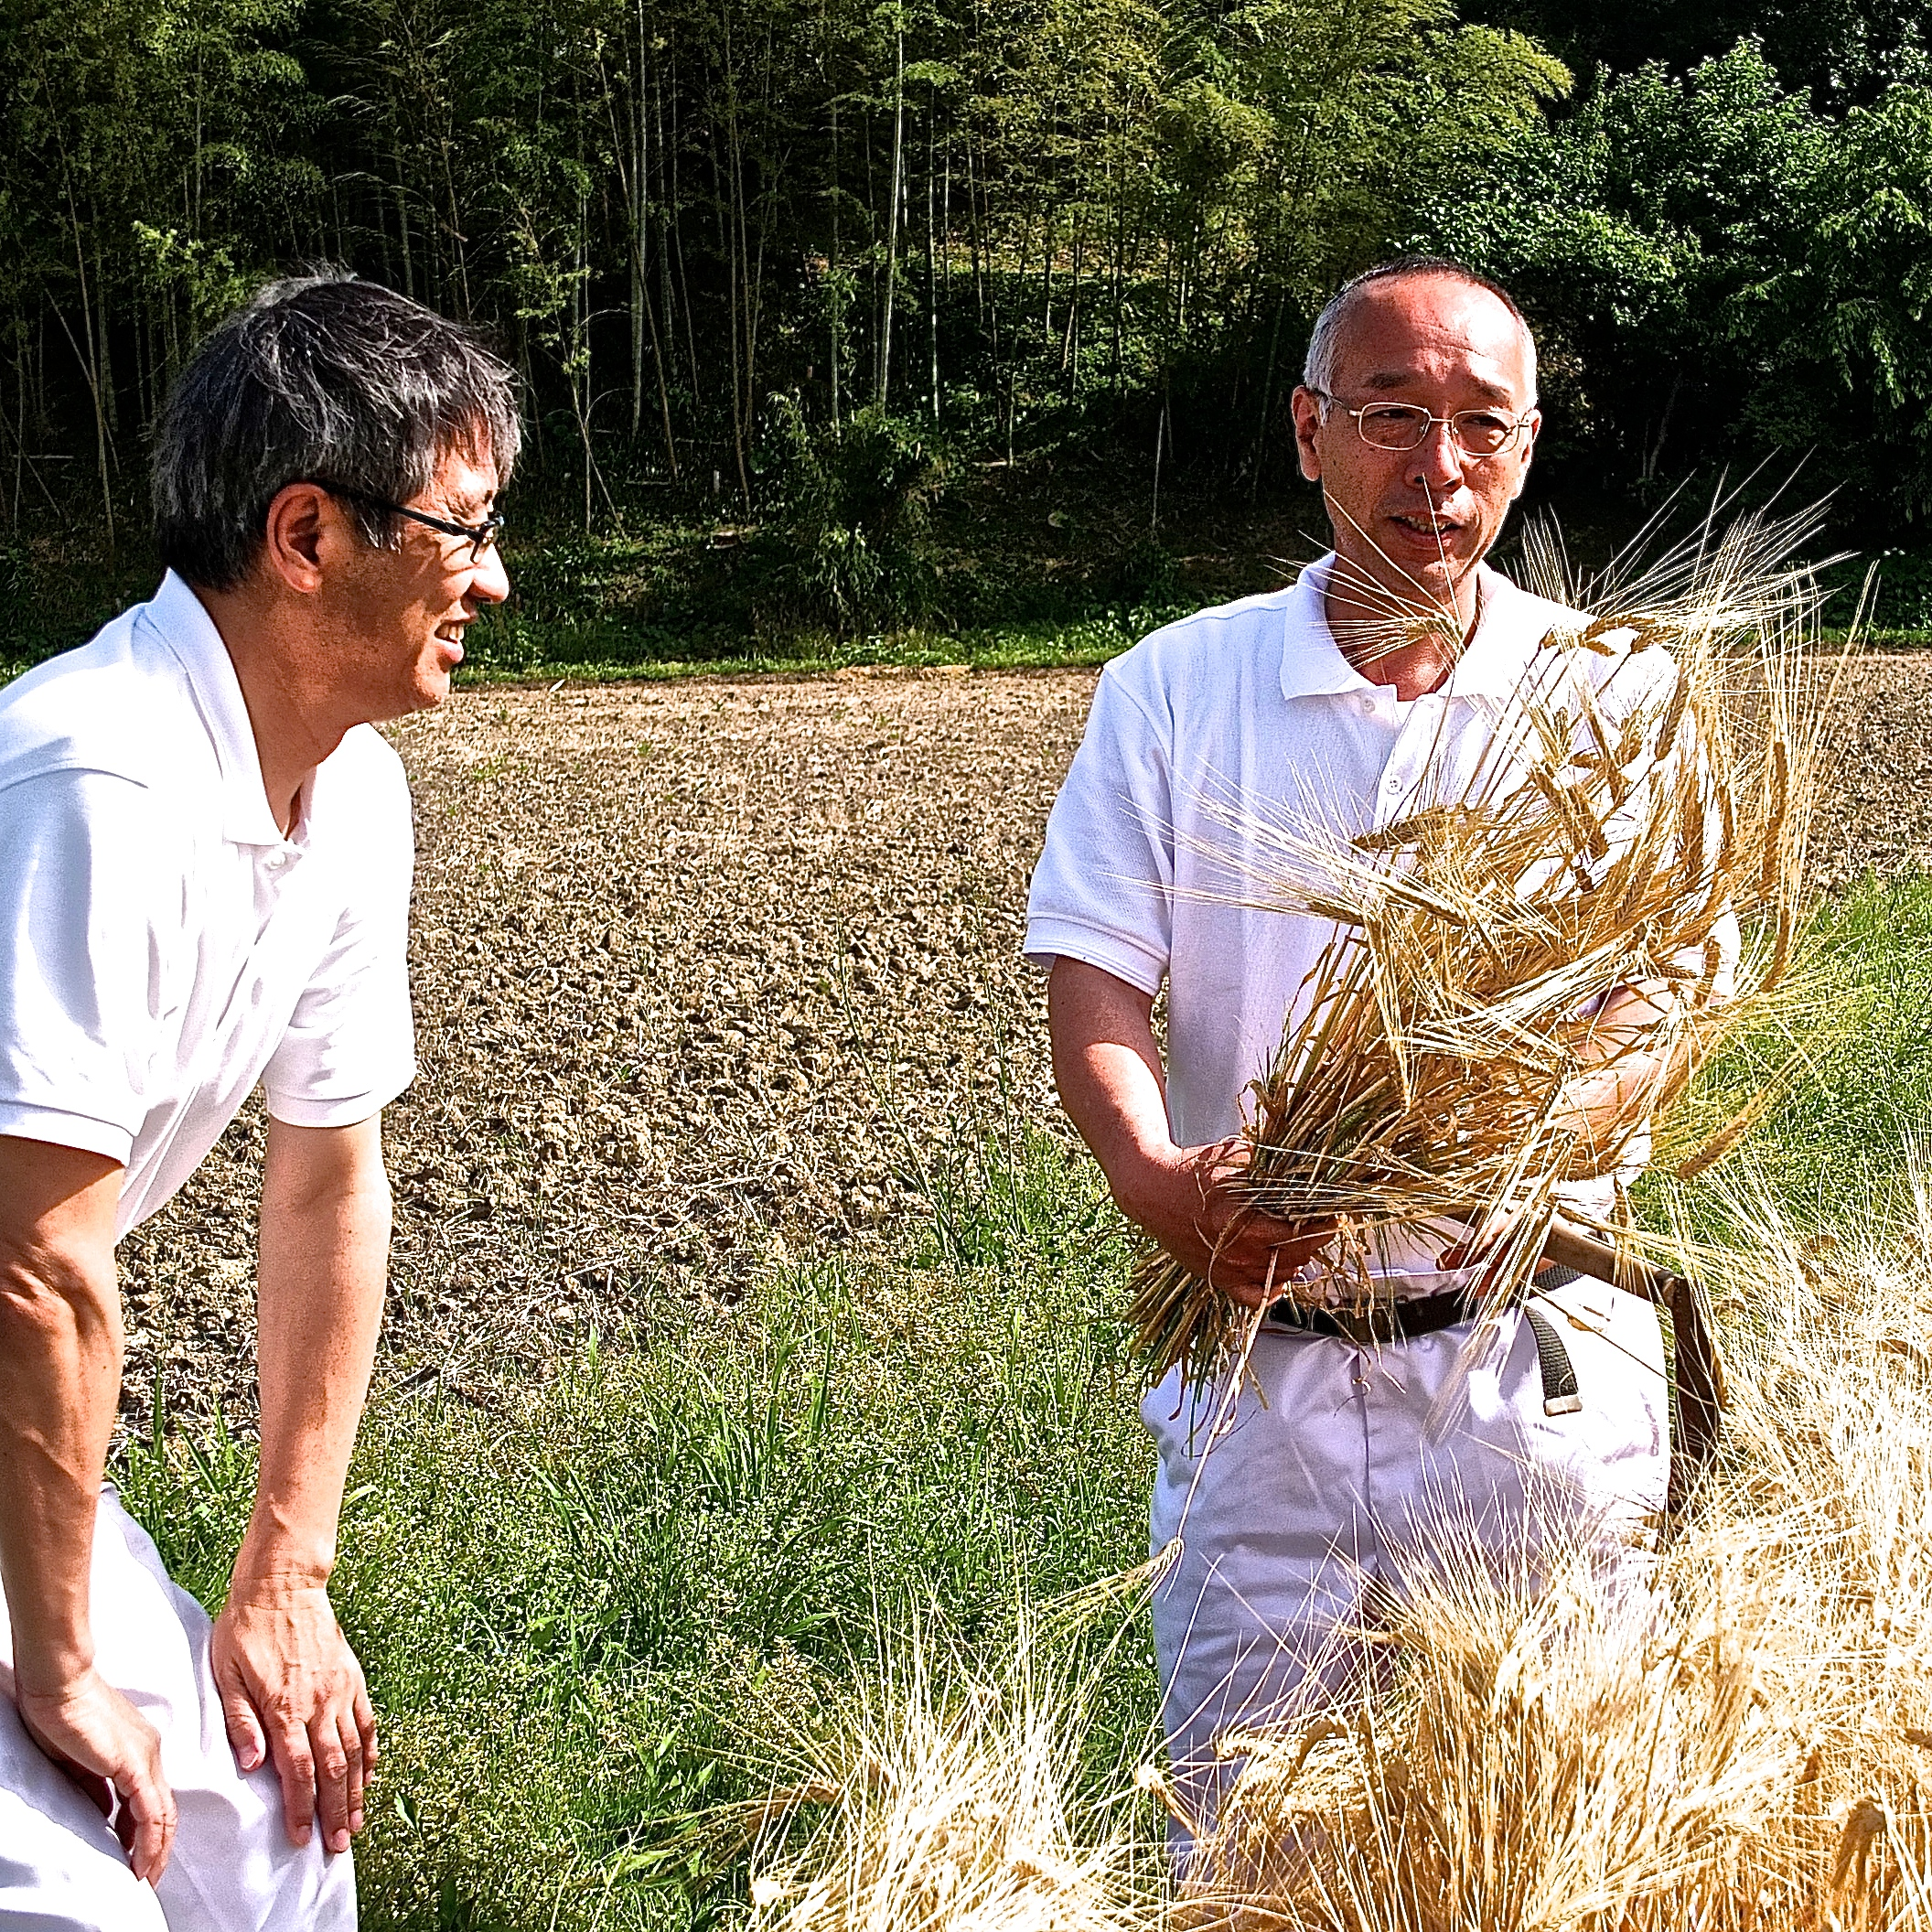 Master distillers Wada (left) and Okoba (right) viewing the harvest.